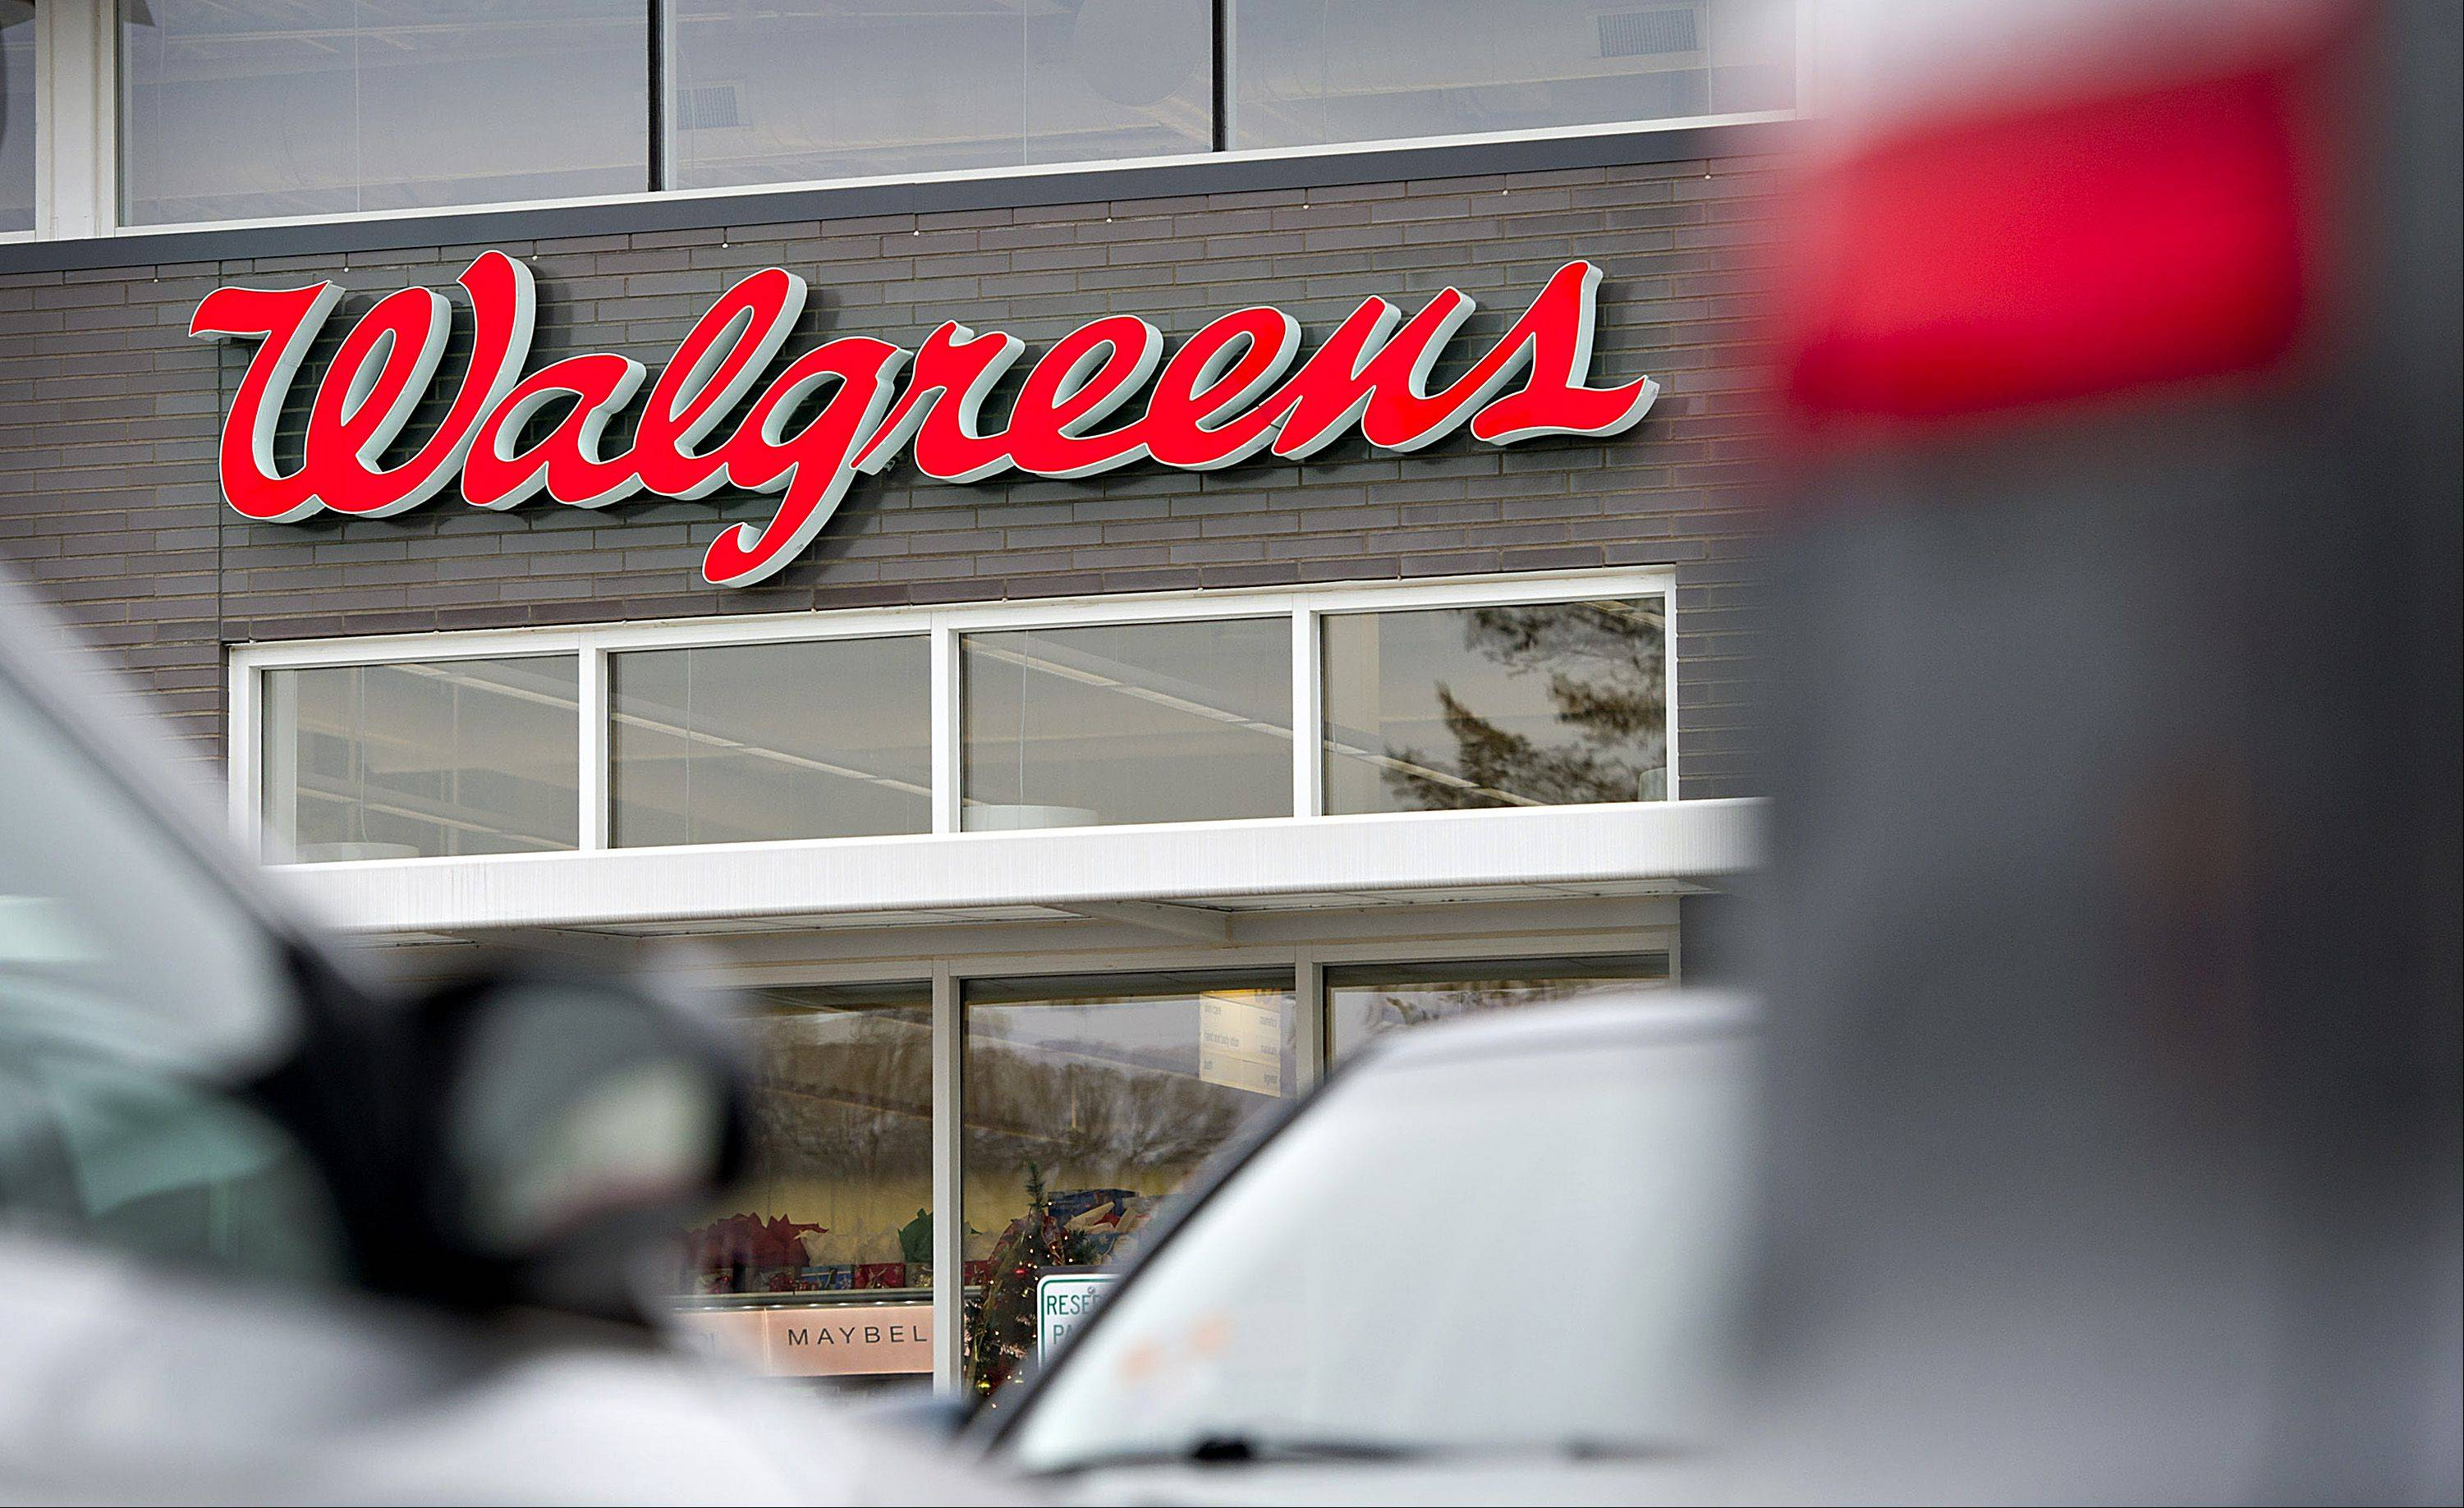 Walgreens announced that it was rolling out a prepaid debit card at all of its 8,541 locations, including Duane Reade stores, by the end of the year. And not just a run-of-the-mill rechargeable piece of plastic: This one will be able to make online bill payments, cash checks and directly deposit paychecks. It's only $2.95 to join, and ATM withdrawals will be free at machines inside the store, with a $2.95 fee for those outside. For people without a bank account -- and there were 10 million of them as of 2011 -- dropping into a Walgreens could become the easiest way to manage their finances.